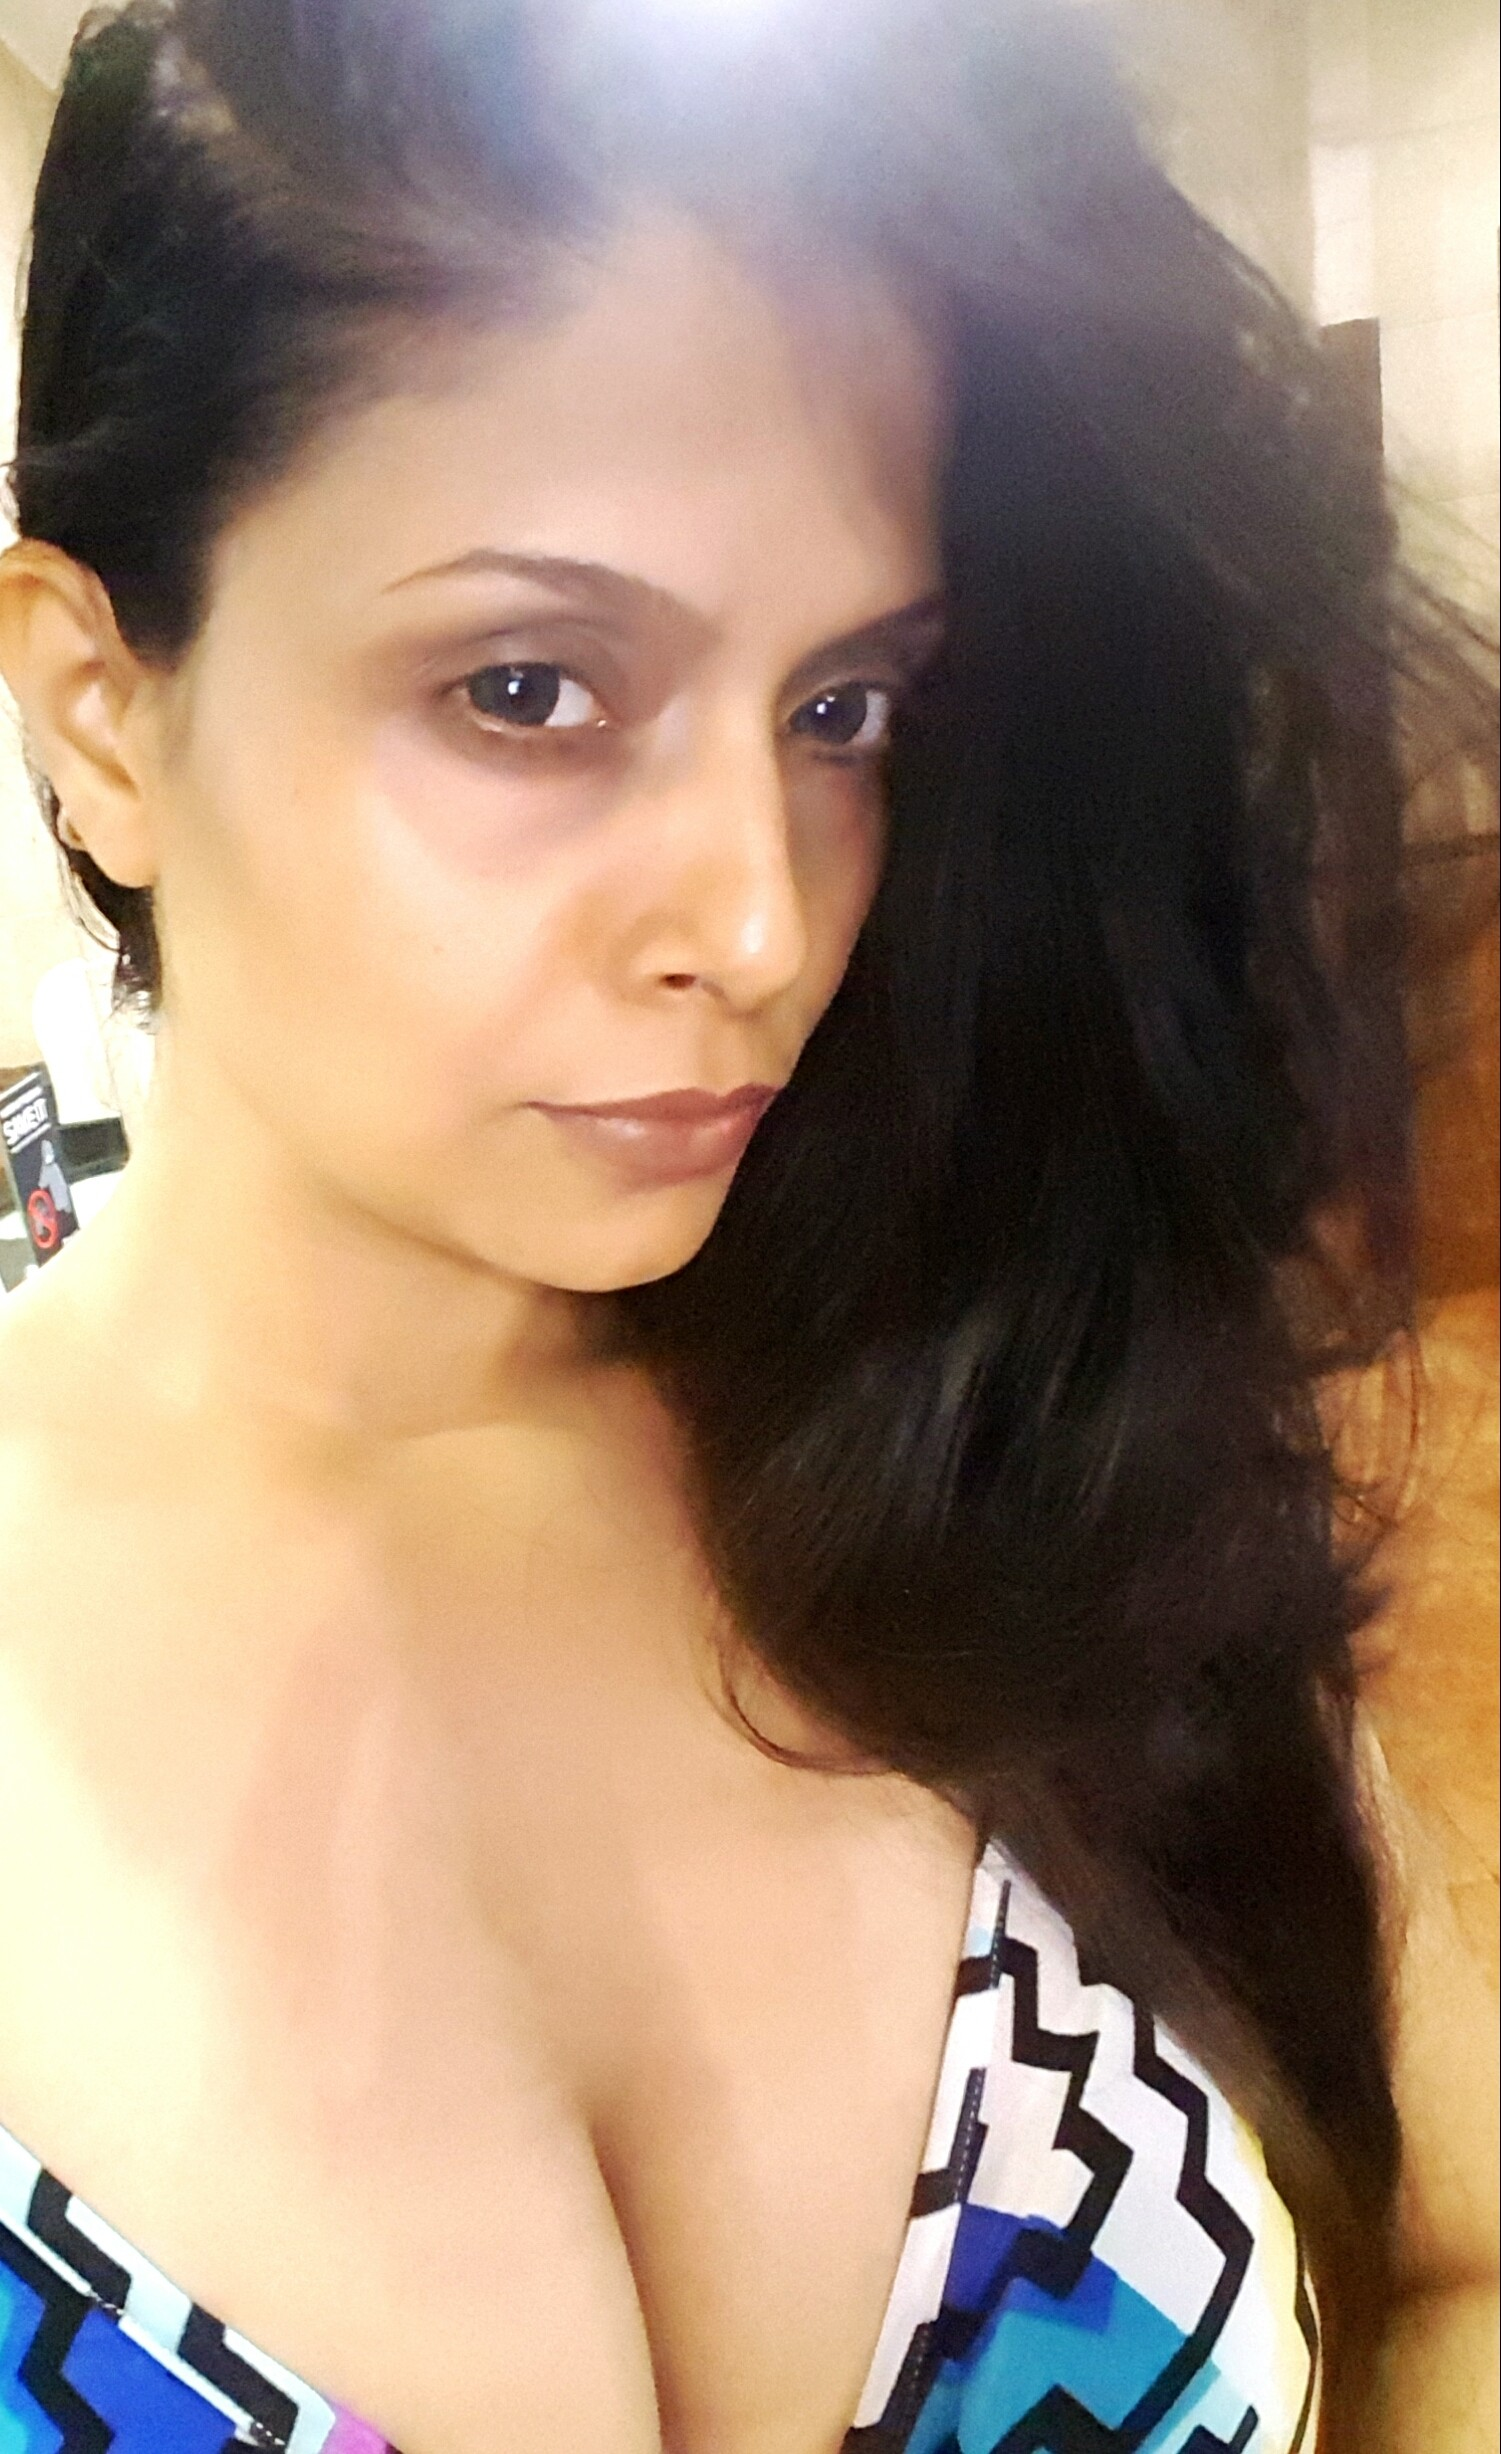 Gulshan sharma is looking very hot even without makeup face n with sexy body.